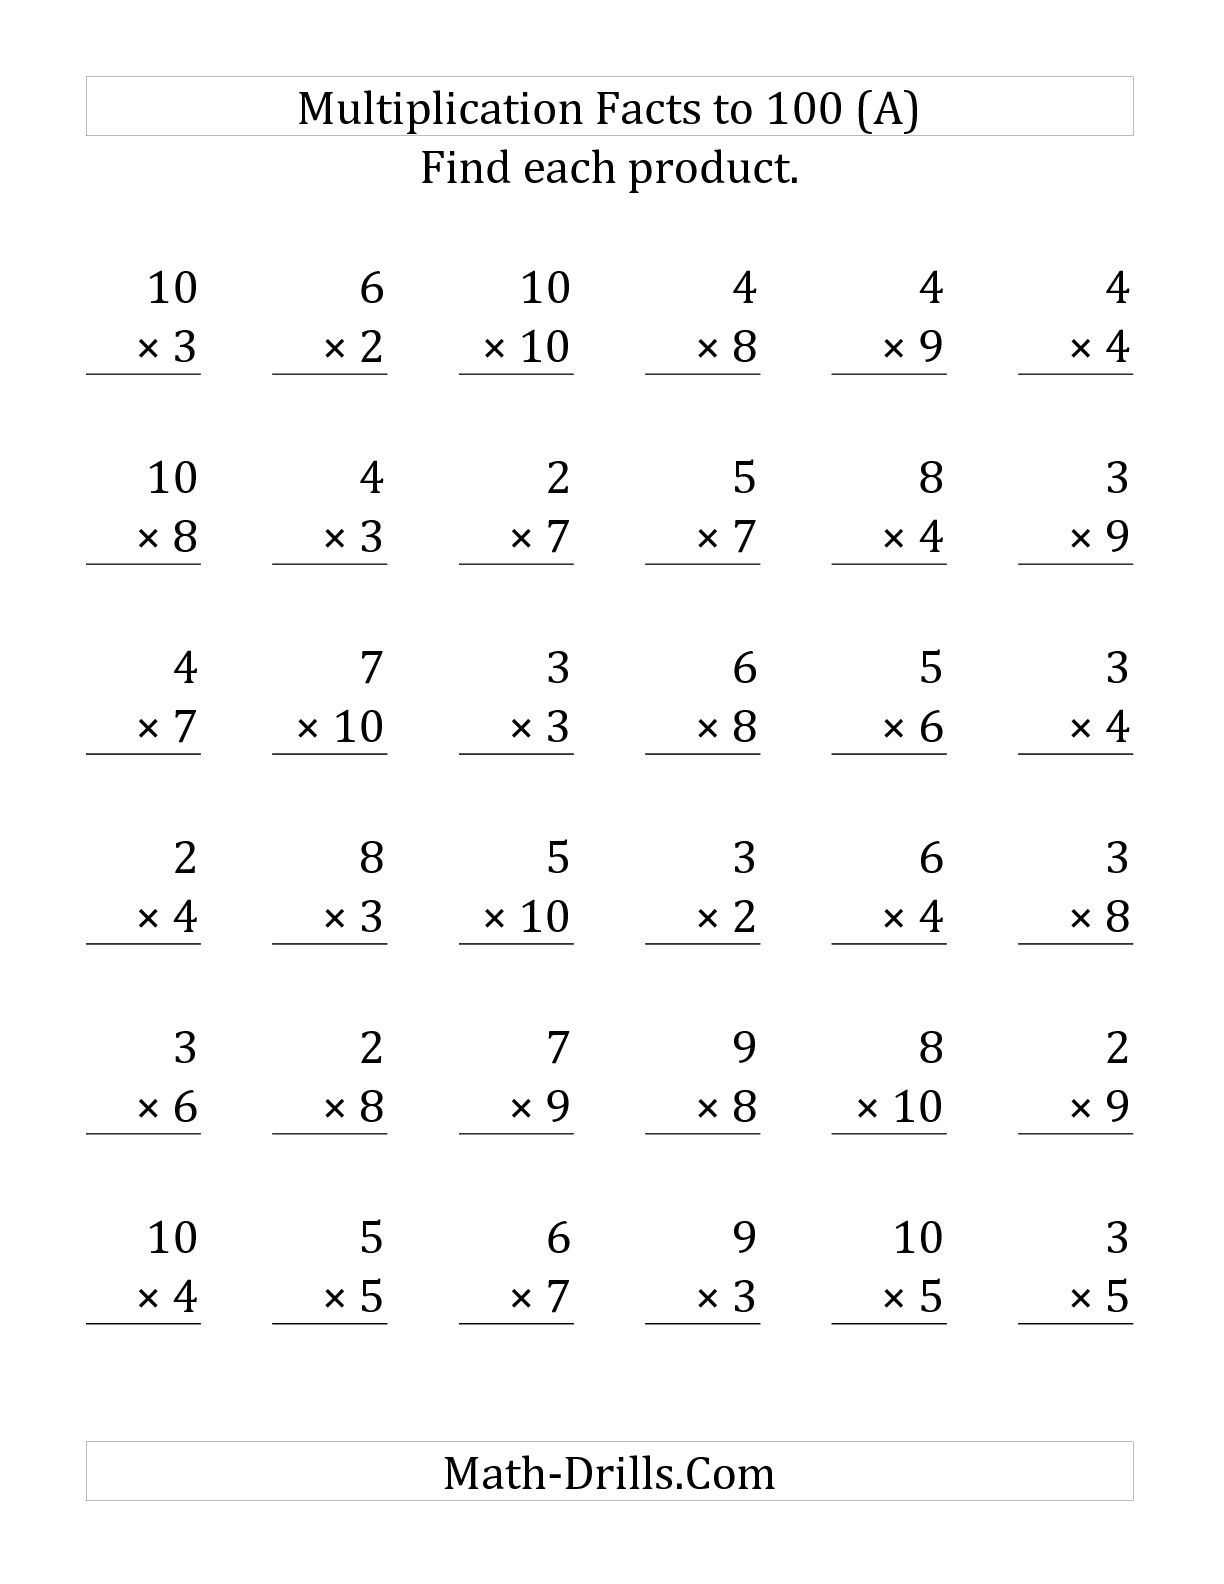 Worksheets Free Printable Ged Math Worksheets the multiplication facts to 100 no zeros or ones 36 questions per explore 3rd grade math third and more